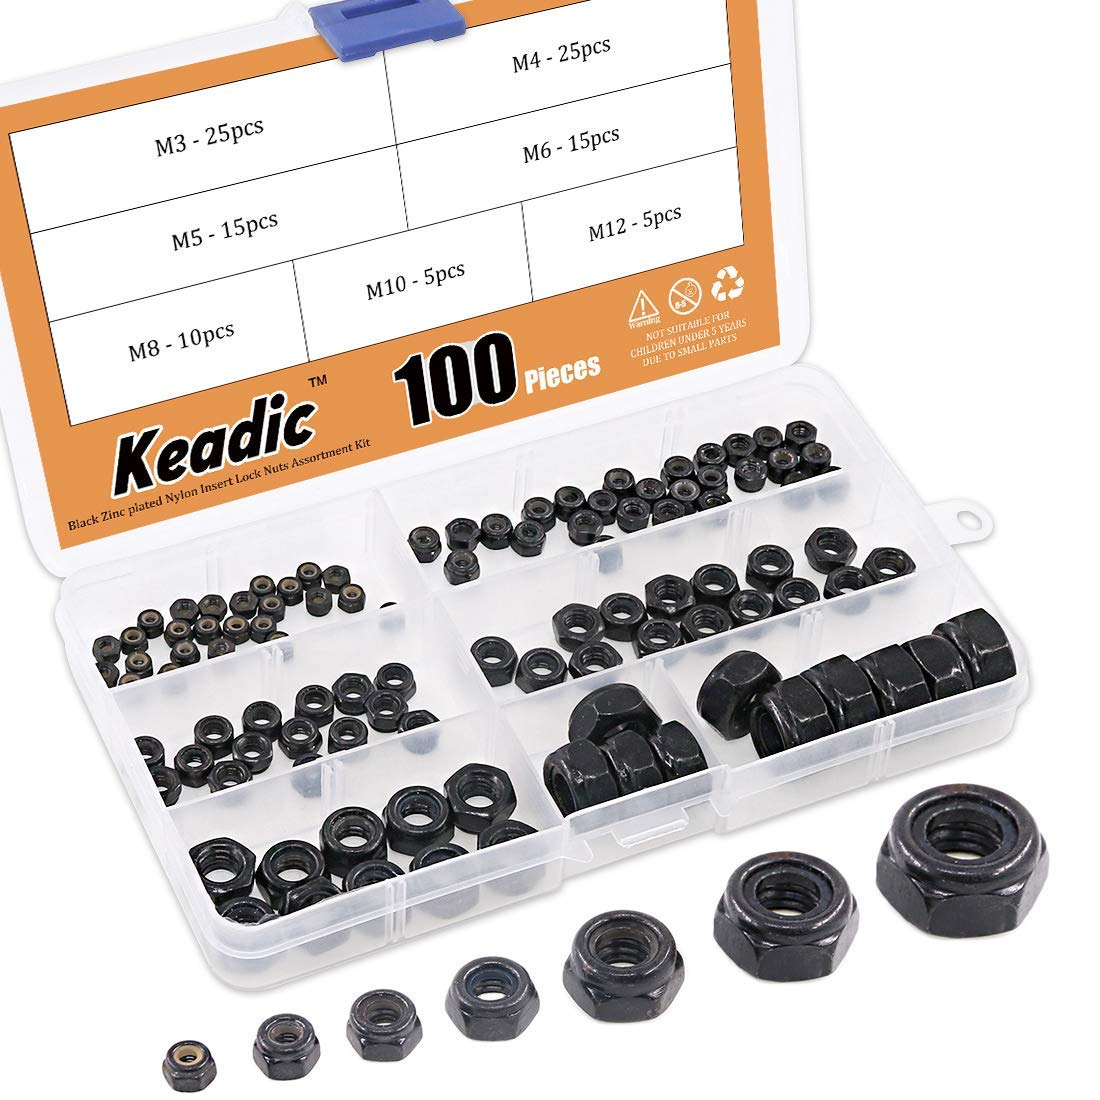 Aexit M6 Thread Screws /& Bolts 304 Stainless Steel Hex Nut Expansion Bolts Expansion Bolts Screws 5pcs